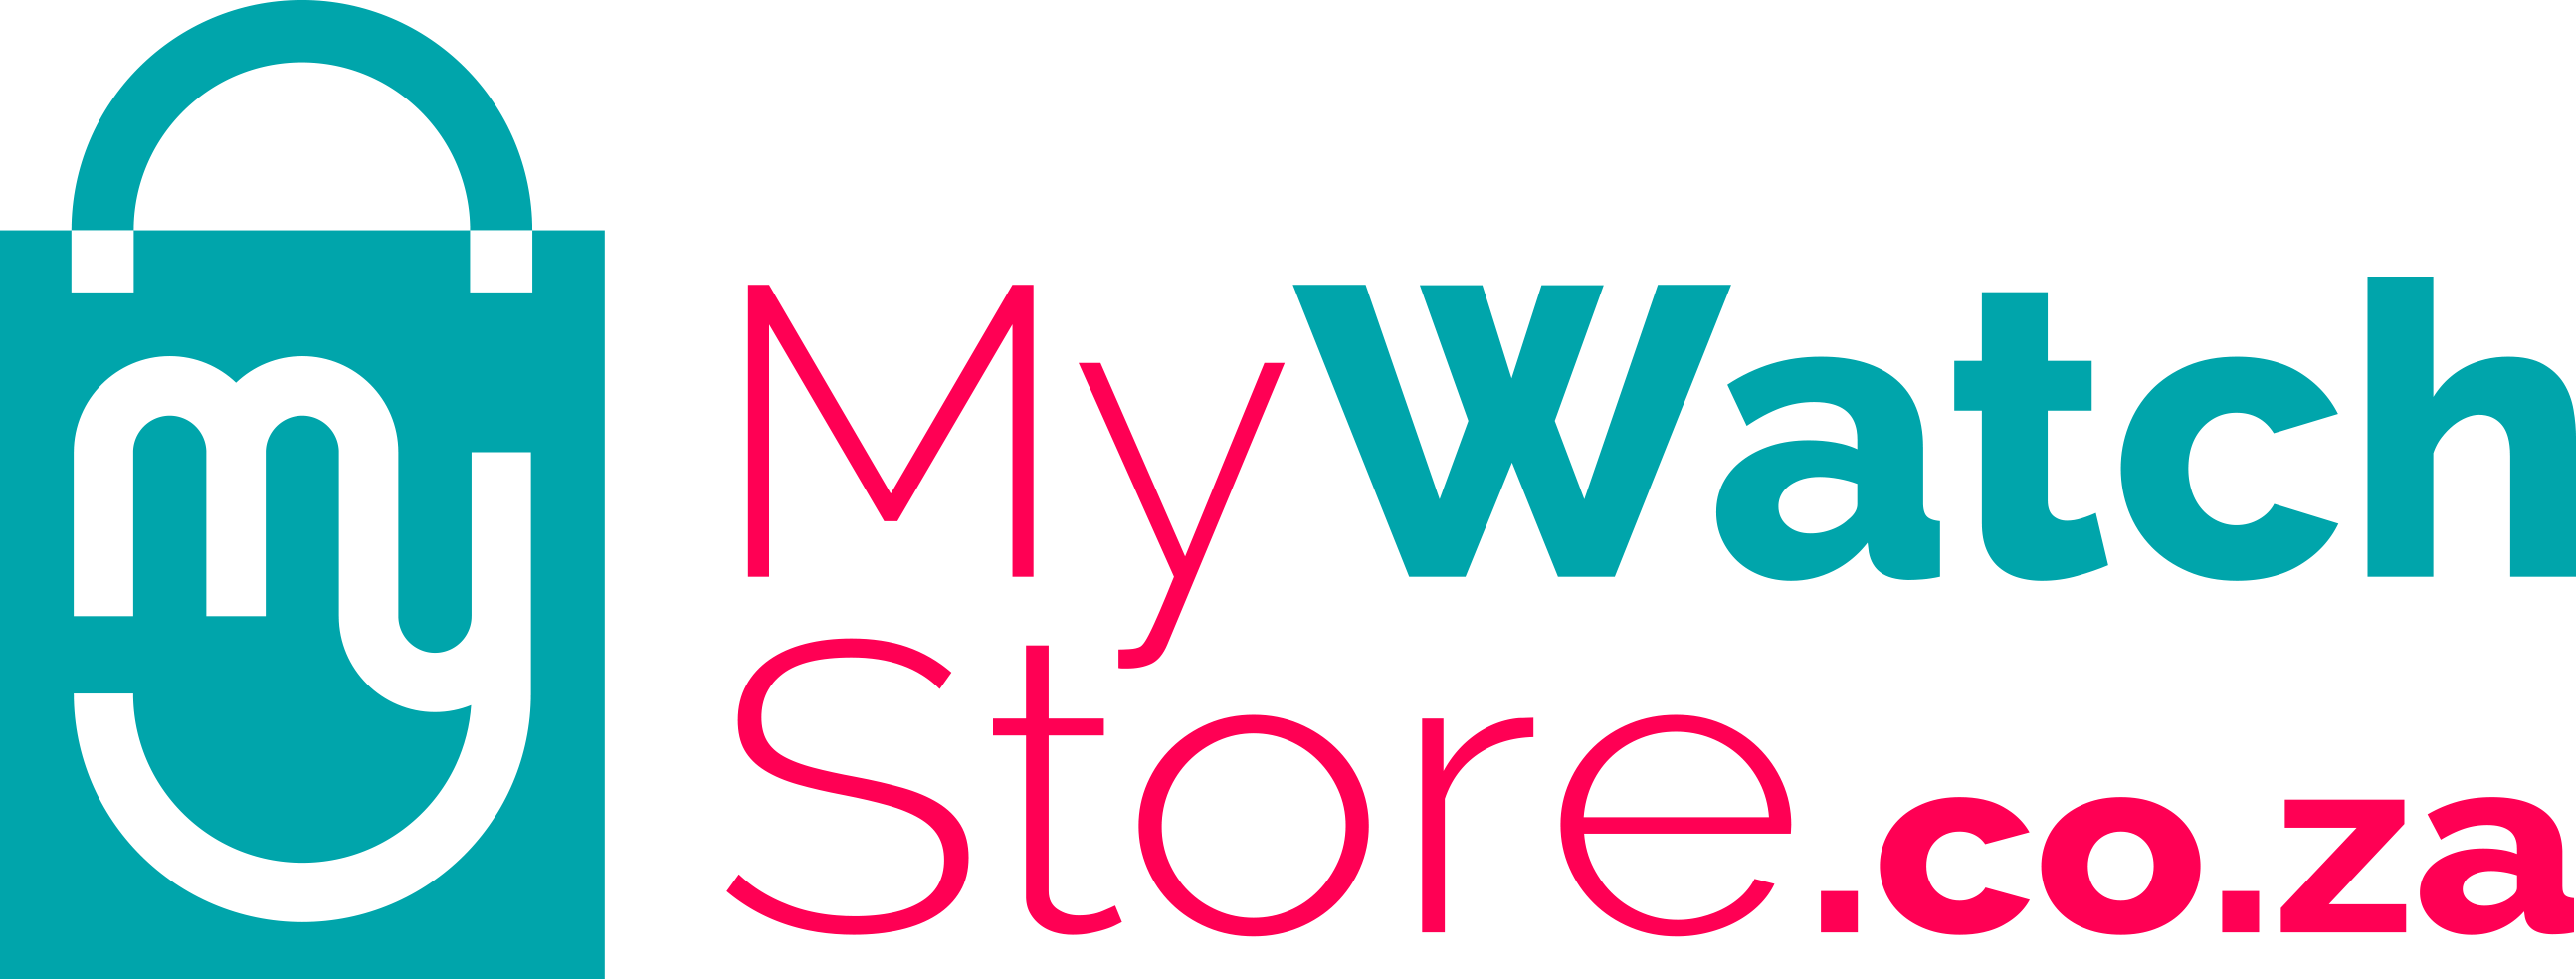 MyWatchStore.co.za